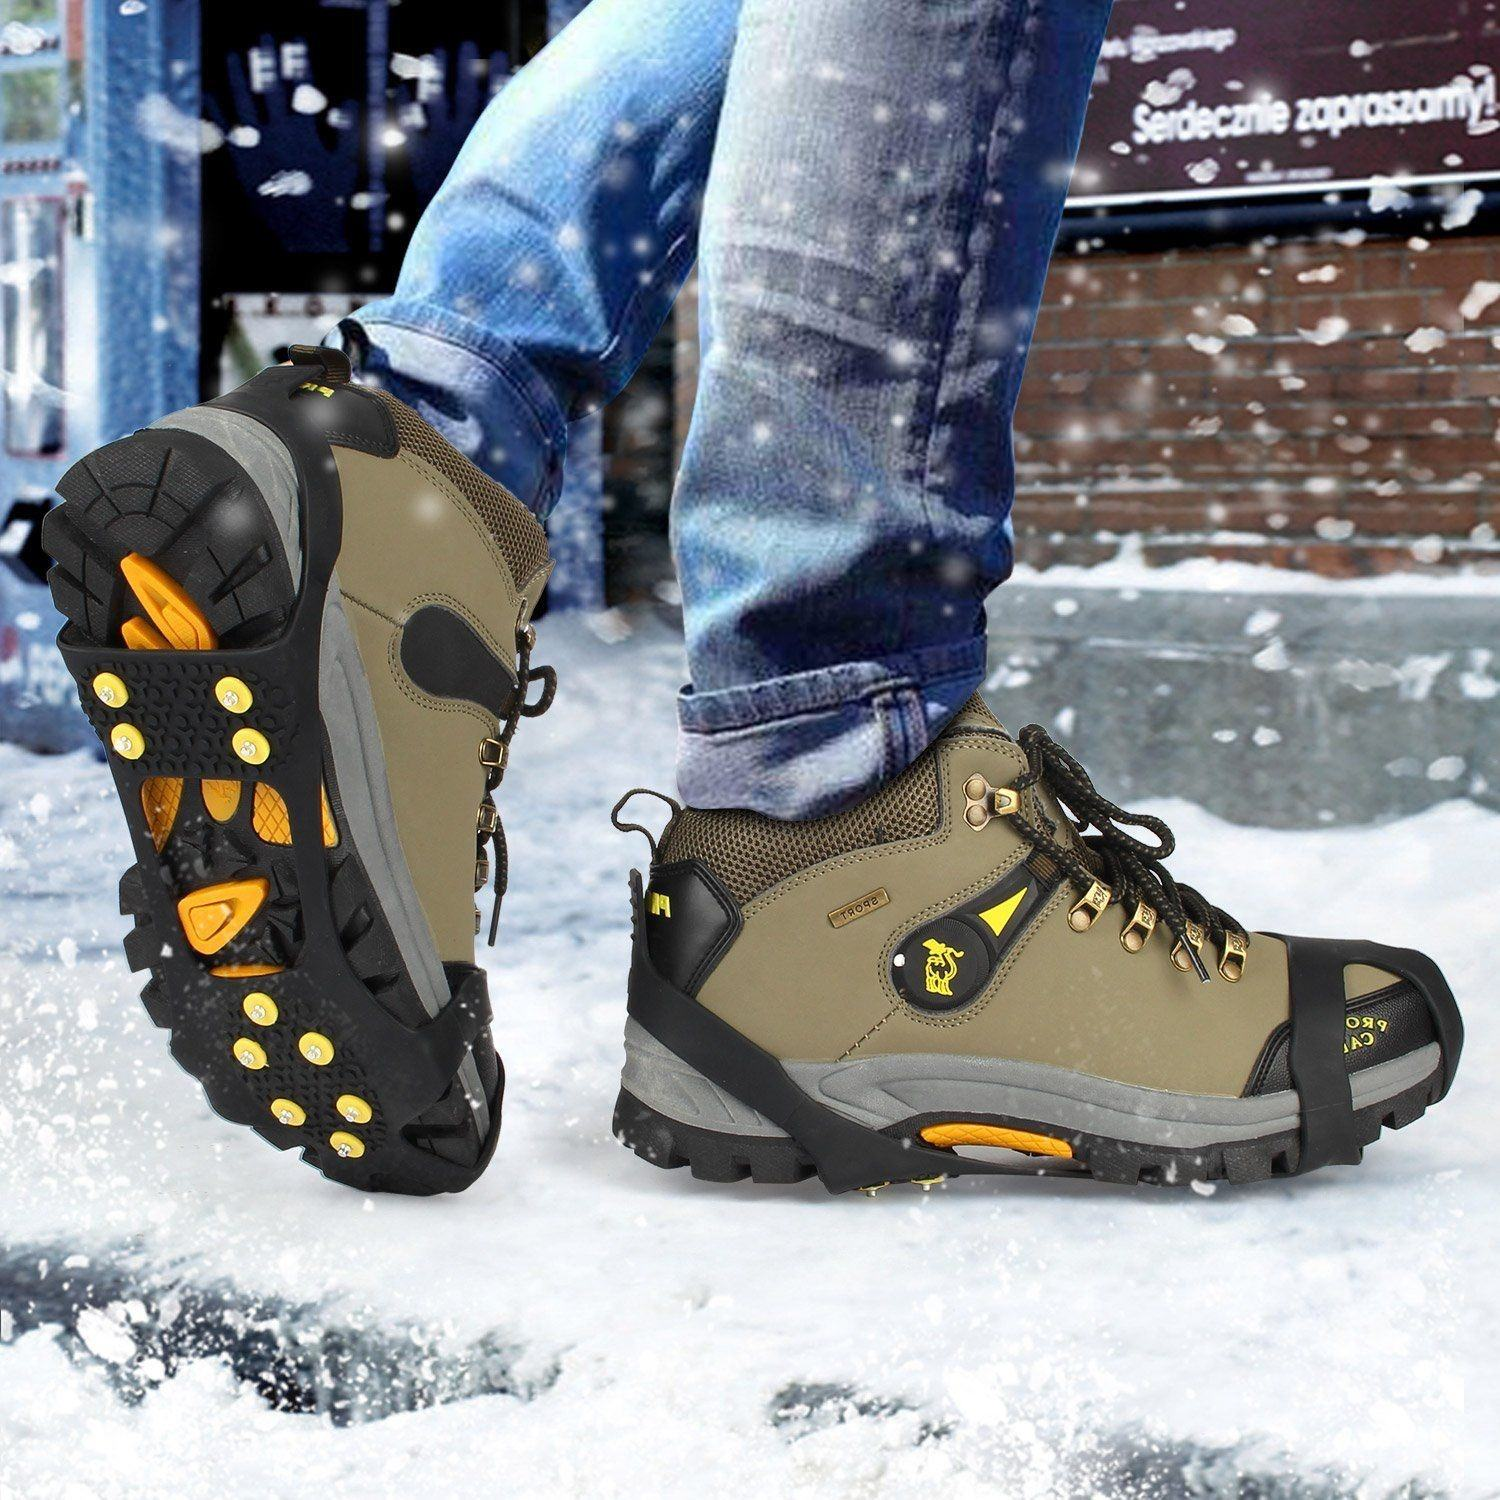 Anti-Slip Ice Snow Spike Grip Gripper Crampon Cleats For Shoe Boot Overshoe New